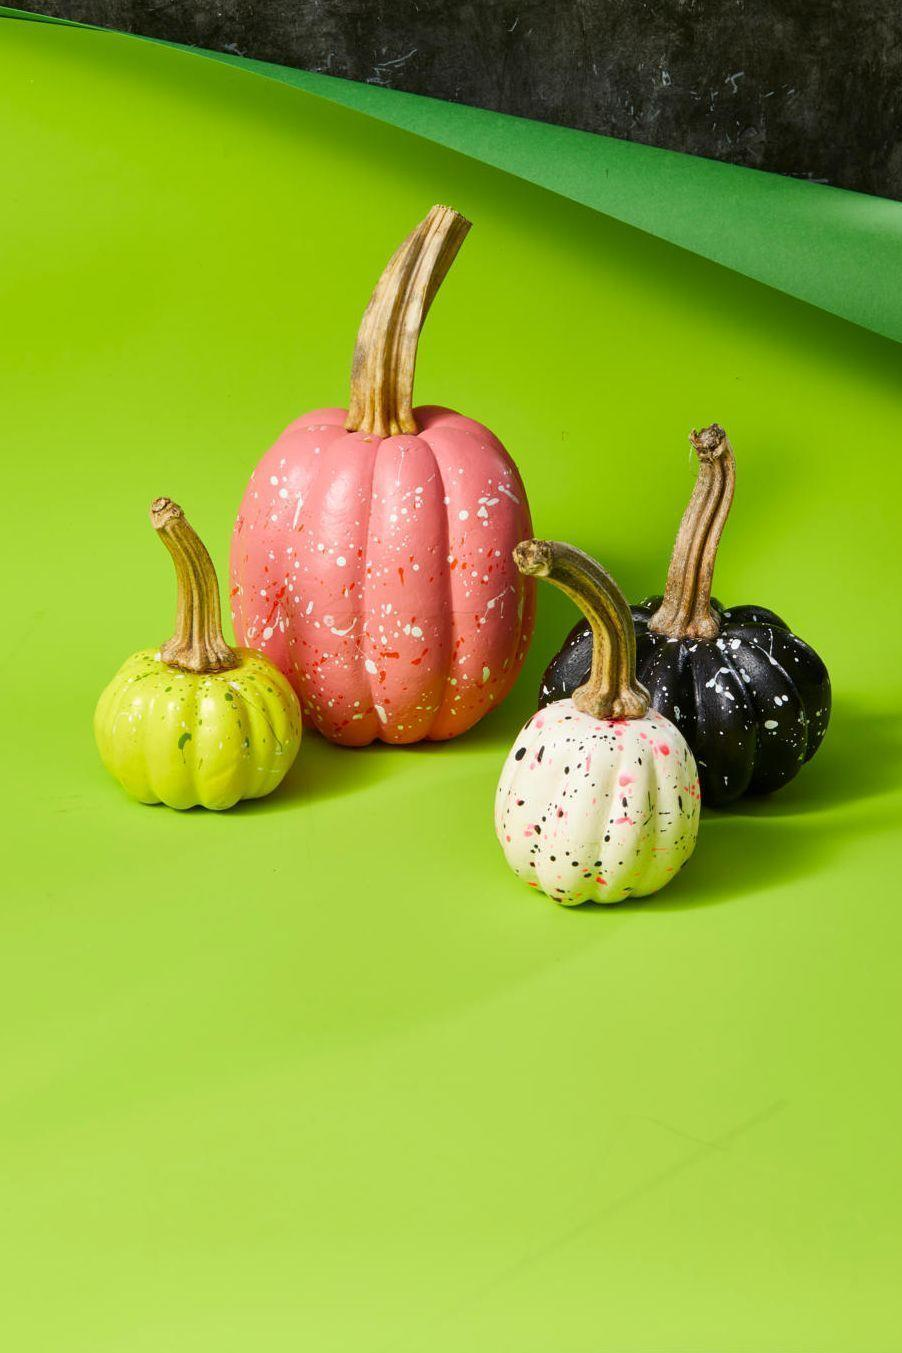 """<p>The perfect Halloween craft is one that's just as festive on October 31 as it is come Thanksgiving (that way, you can make the craft on one holiday and use it as a decoration on the next). Fortunately, there are a ton of crafts that fall into this category, such as these paint-splattered pumpkins. Simply paint pumpkins a solid color and then splatter a different color over it using a toothbrush.</p><p><strong>RELATED:</strong> <a href=""""https://www.goodhousekeeping.com/home/craft-ideas/how-to/g2257/creative-fall-craft-ideas/"""" rel=""""nofollow noopener"""" target=""""_blank"""" data-ylk=""""slk:64 Easy Fall Crafts That Celebrate All Autumn Has to Offer"""" class=""""link rapid-noclick-resp"""">64 Easy Fall Crafts That Celebrate All Autumn Has to Offer</a></p>"""